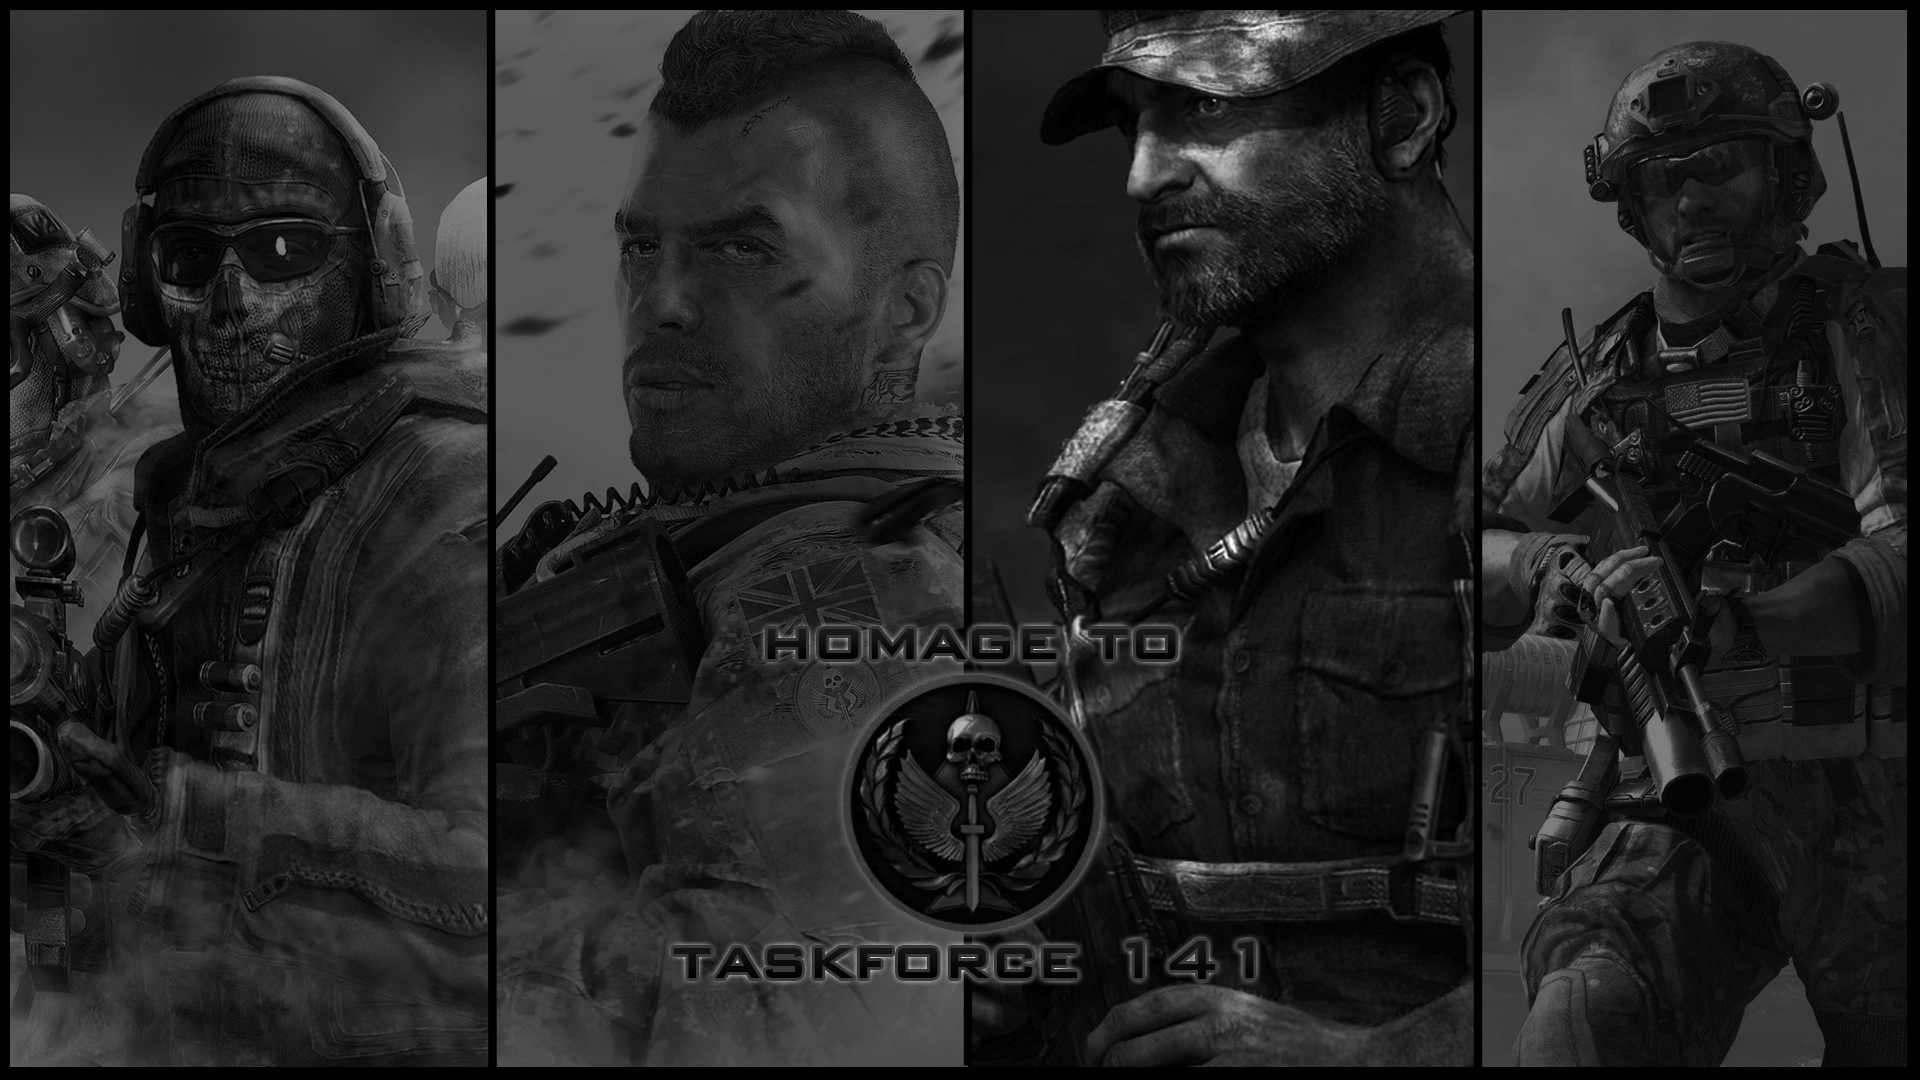 homage to task force 141 by declarck fan art wallpaper games ghost 1920x1080